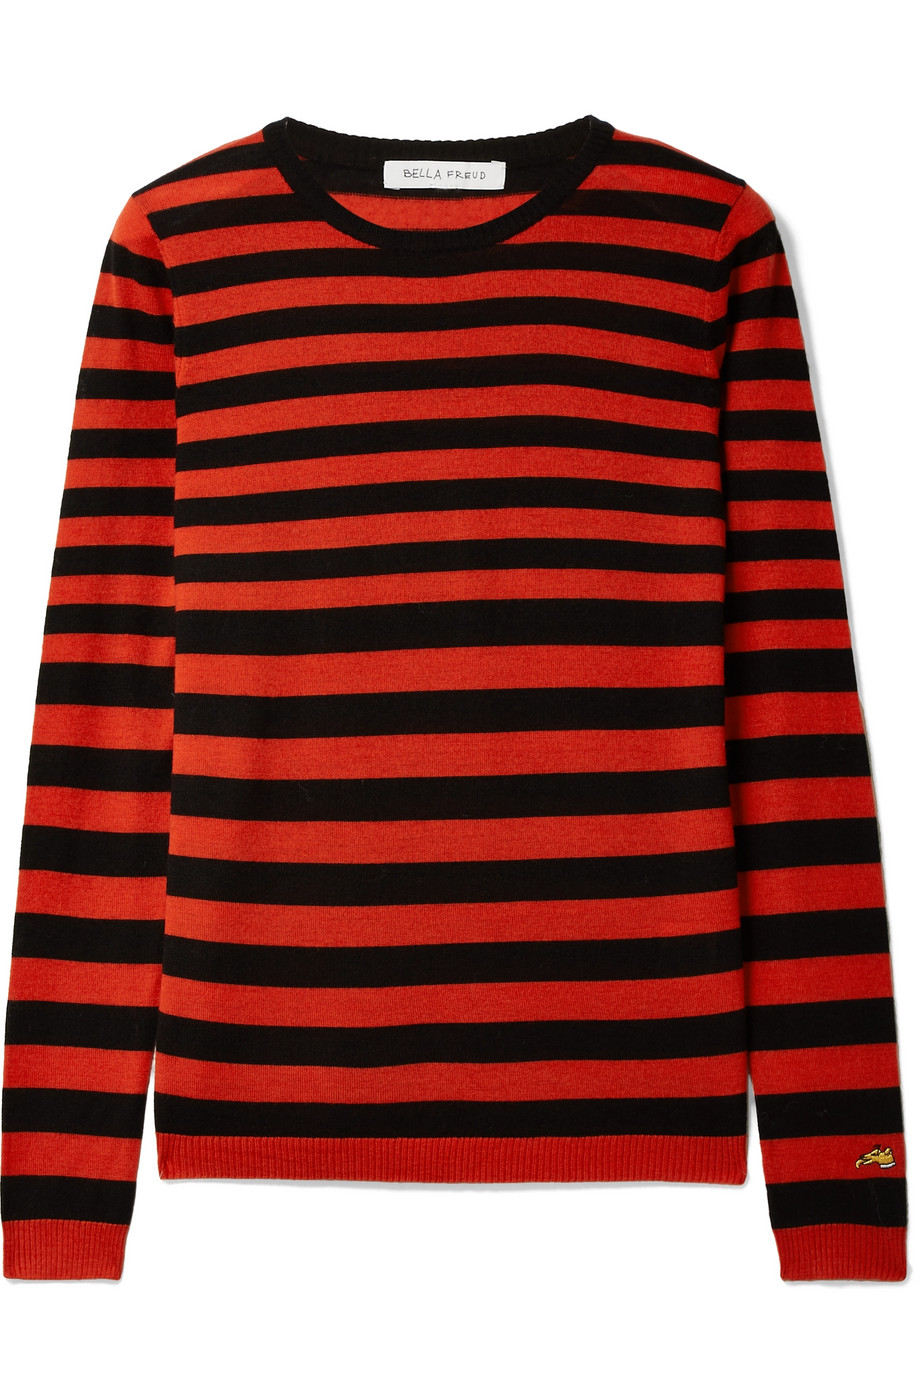 bella freud striped sweater